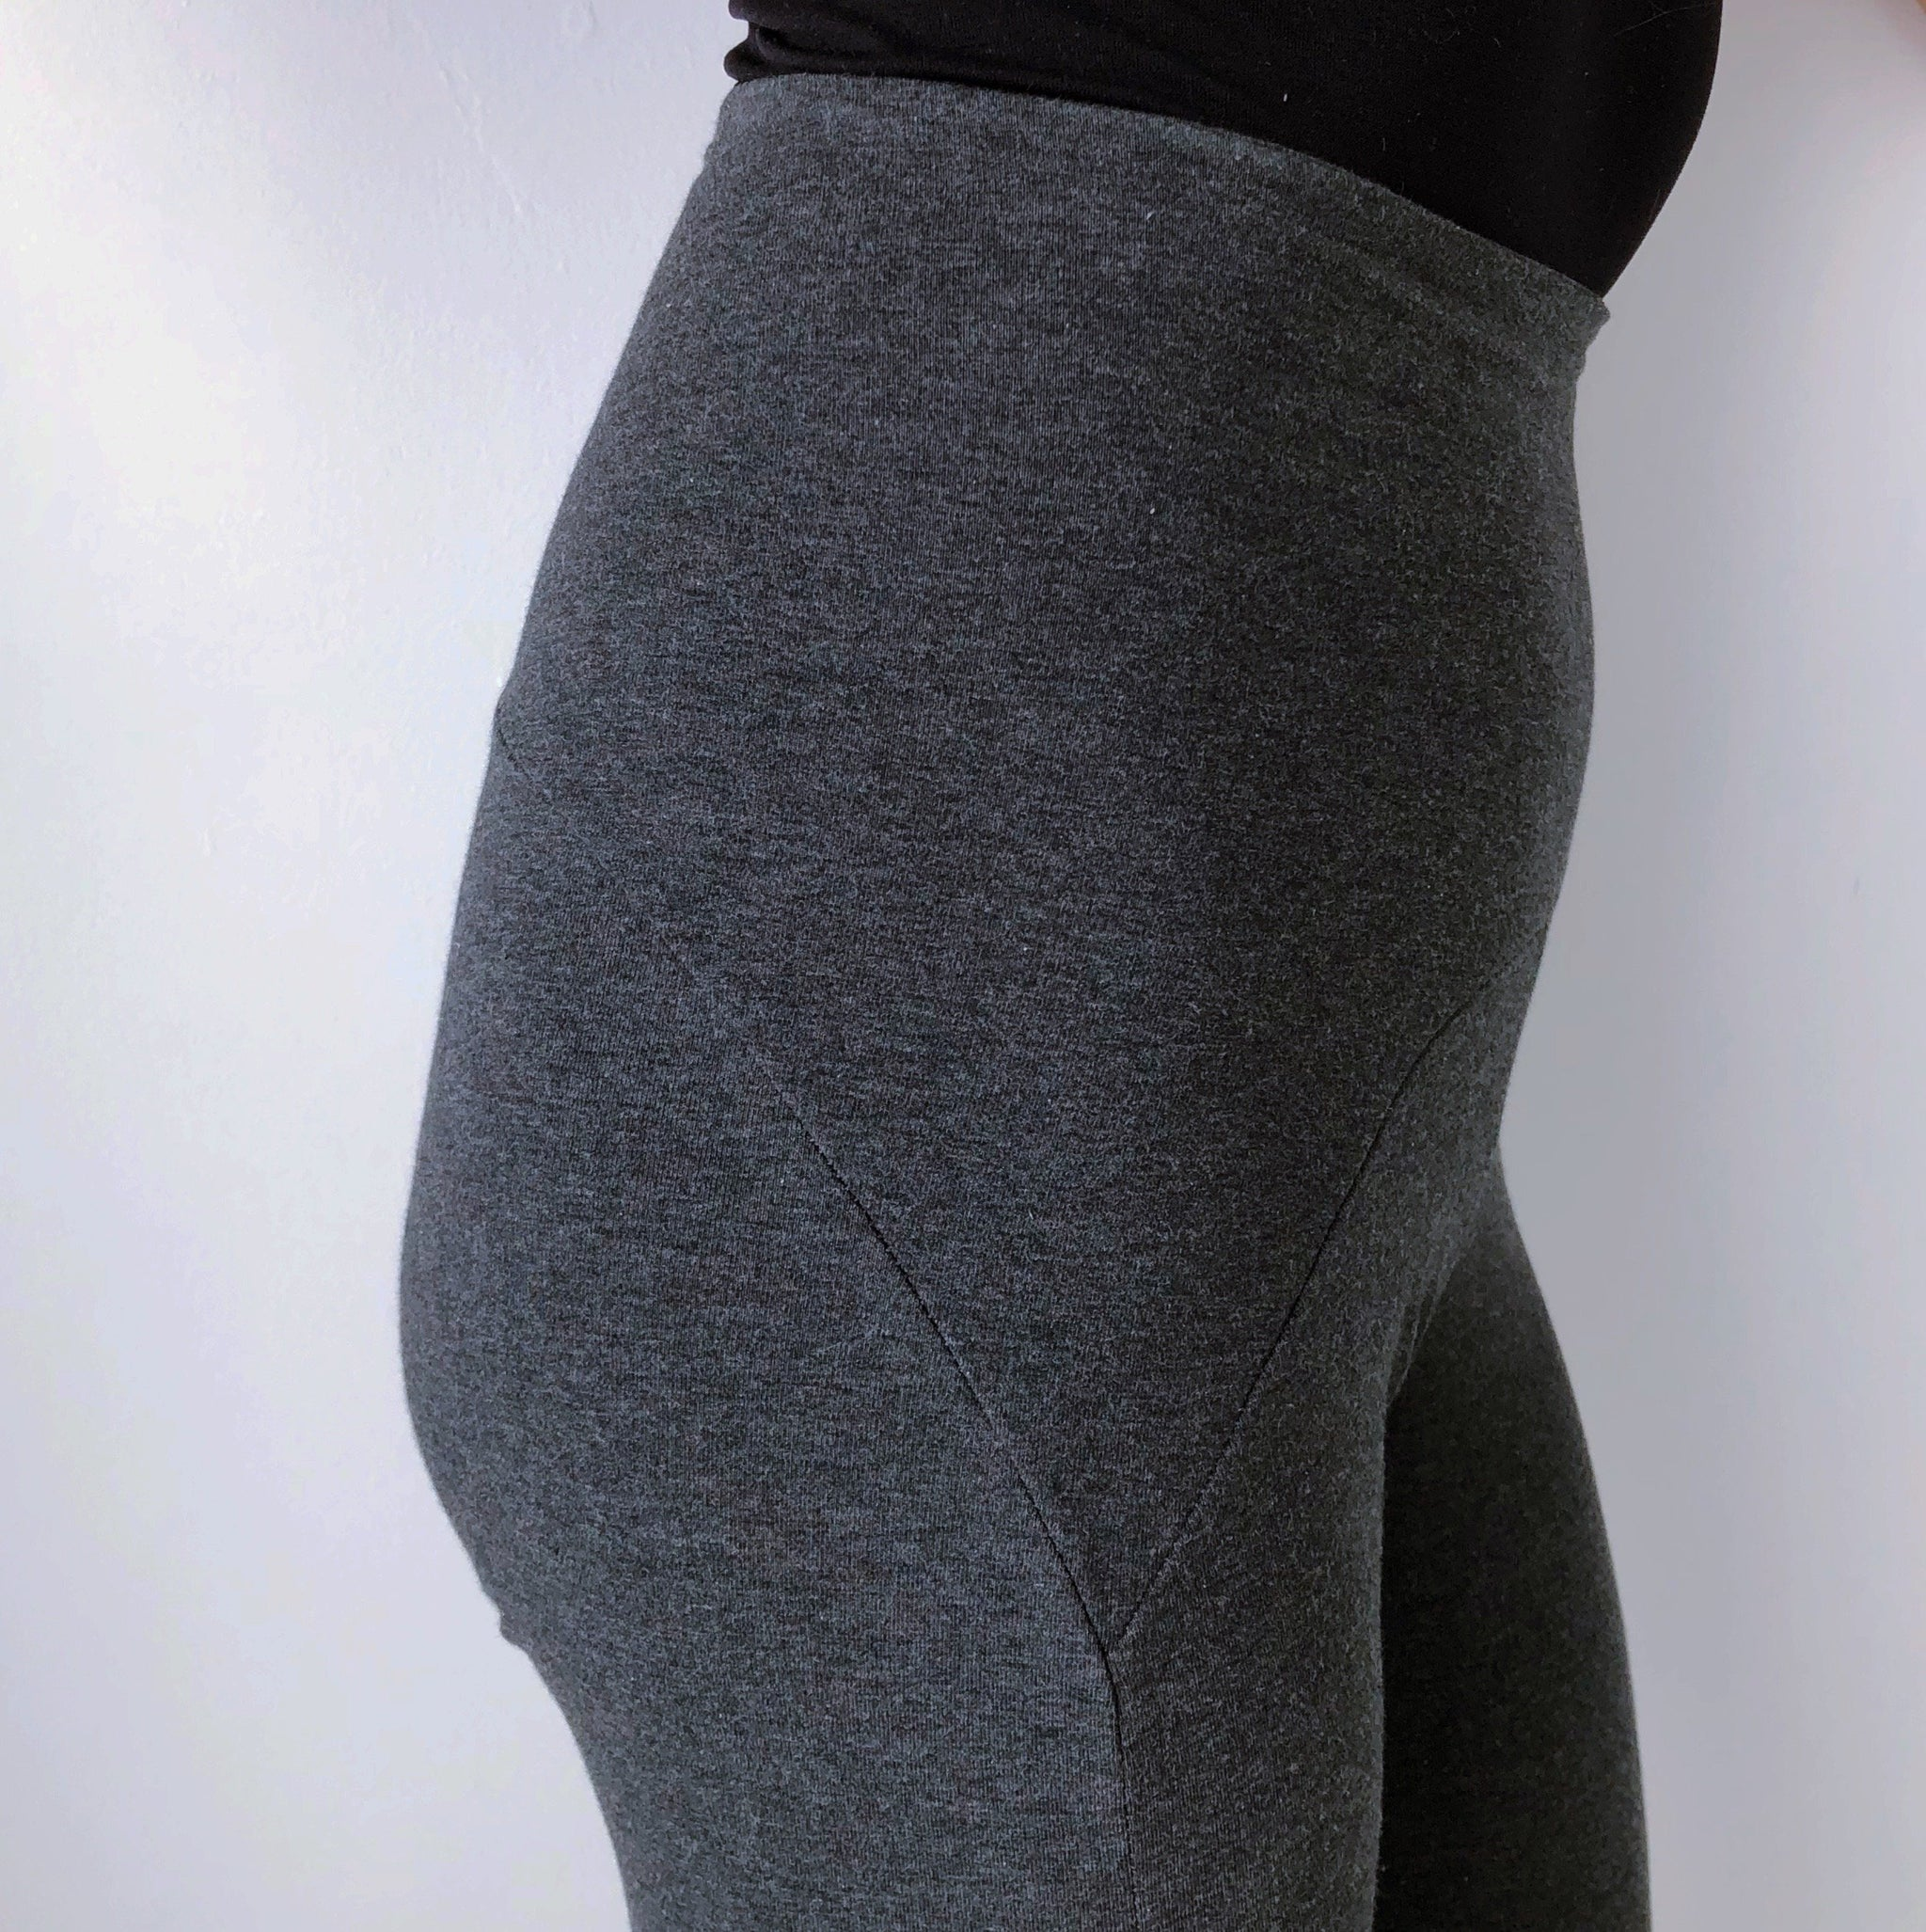 The Shanti Vira Yoga Pants